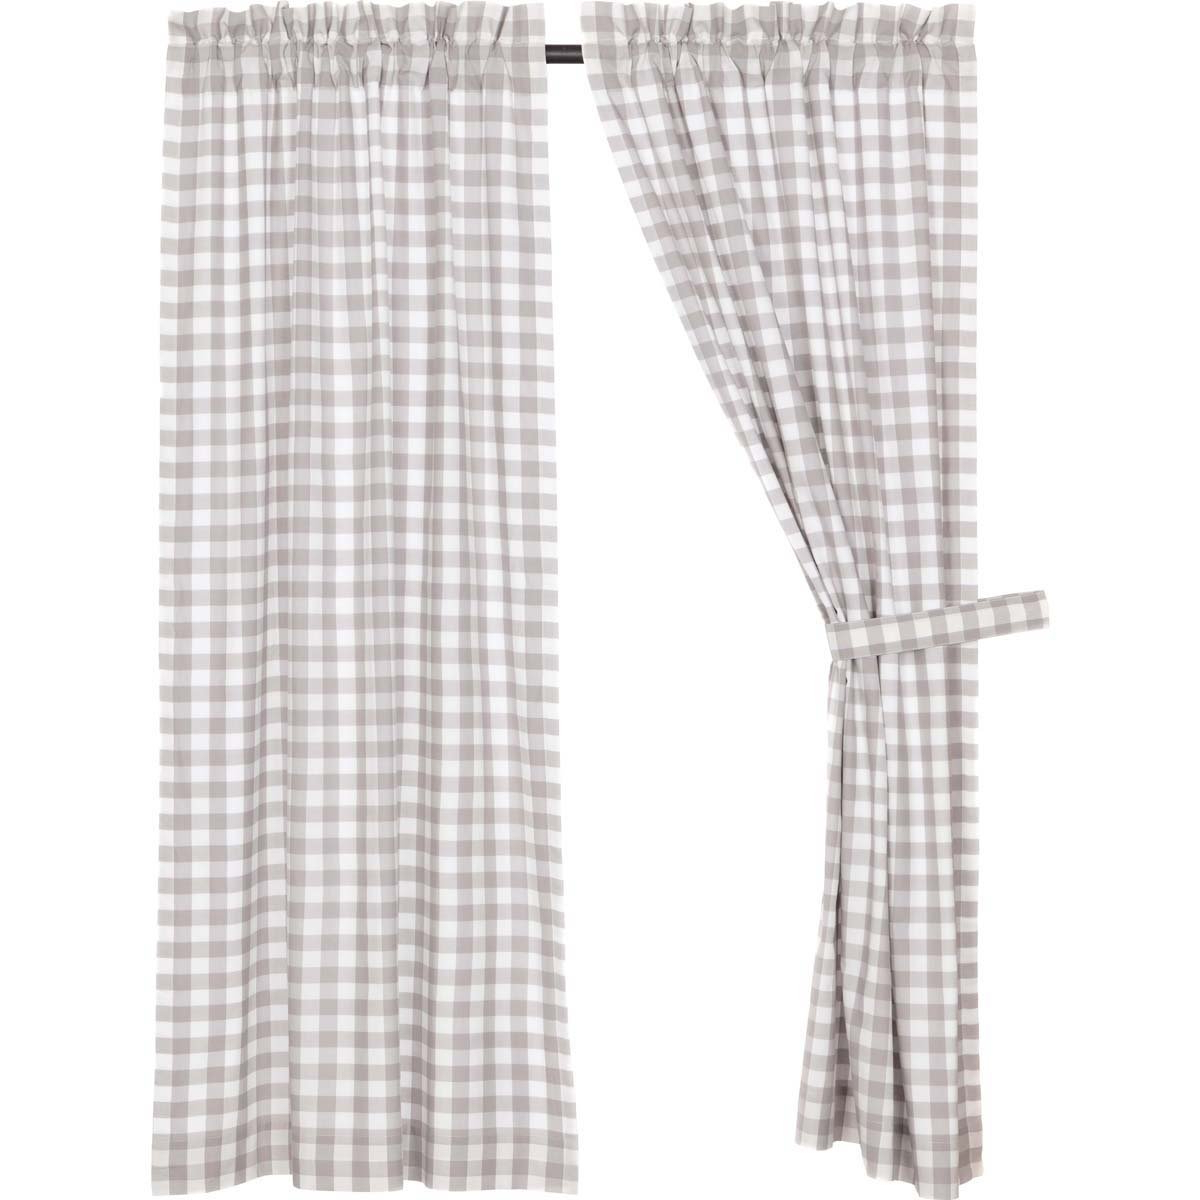 Trendy Grainger Buffalo Check Blackout Window Curtains With Vhc Brands Farmhouse Window Annie Buffalo Check White Lined Short Curtain Panel Pair, Grey (View 12 of 20)